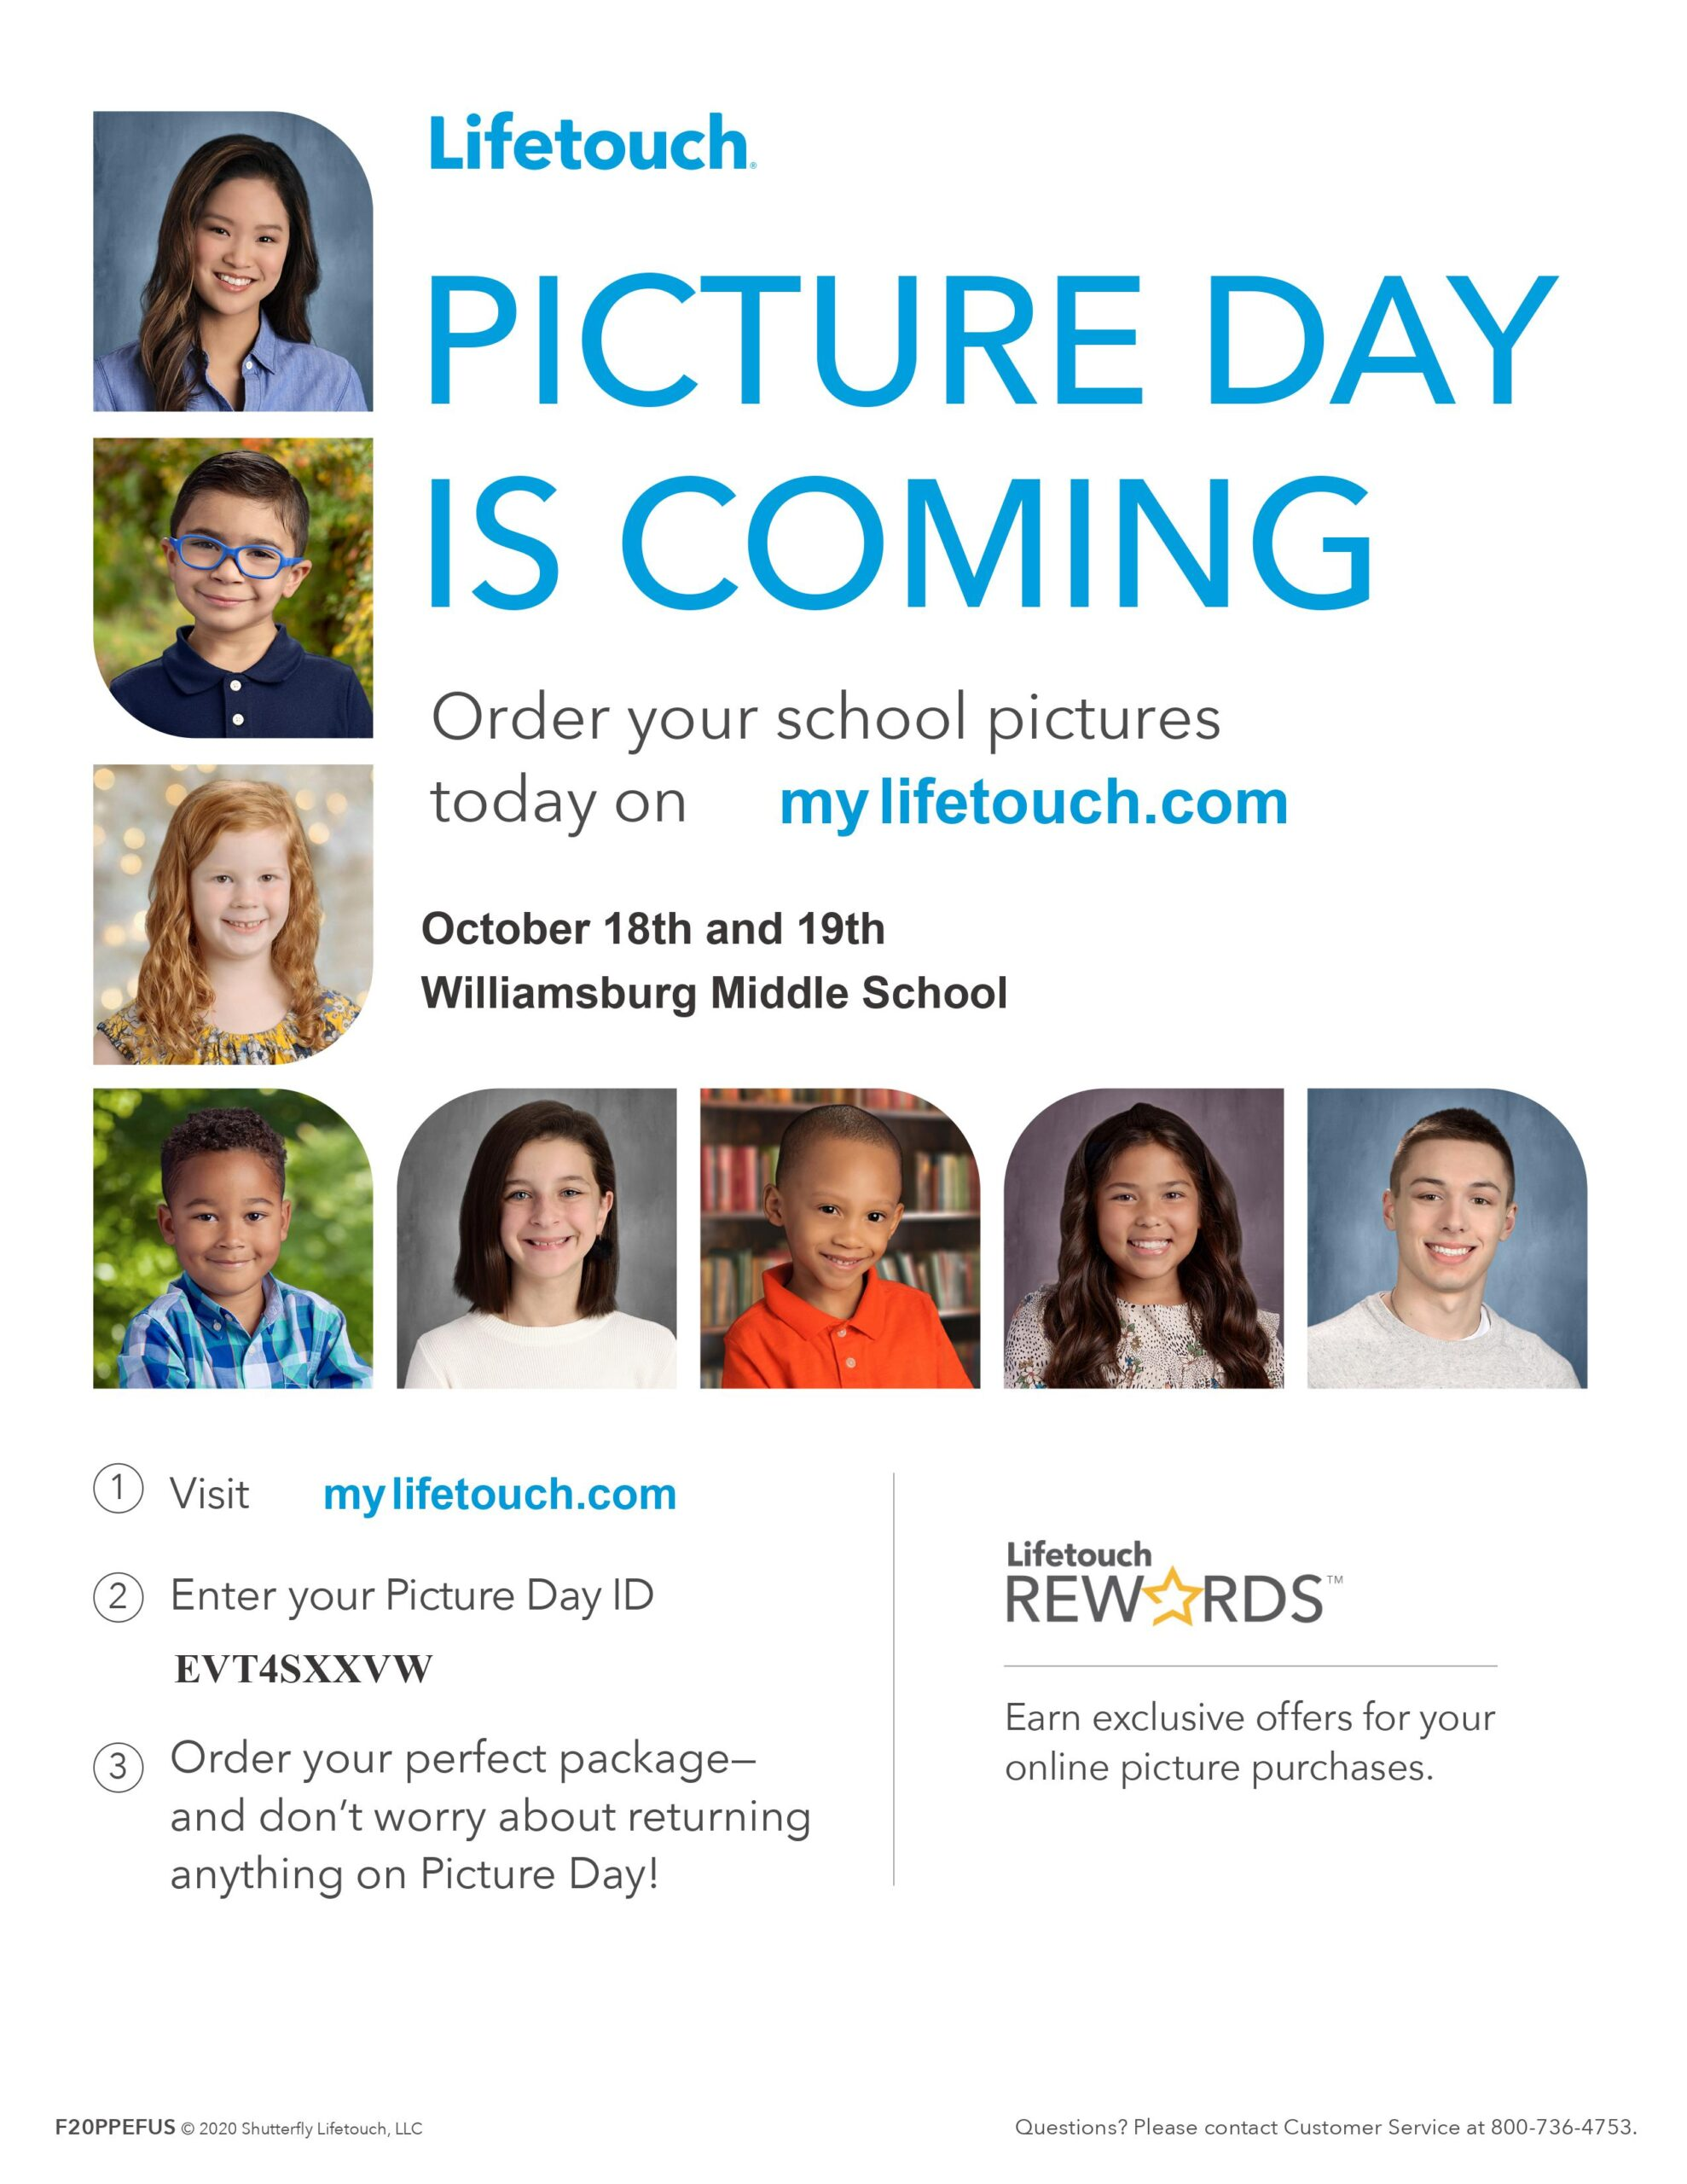 Lifetouch Picture Day is Coming October 18 and 19